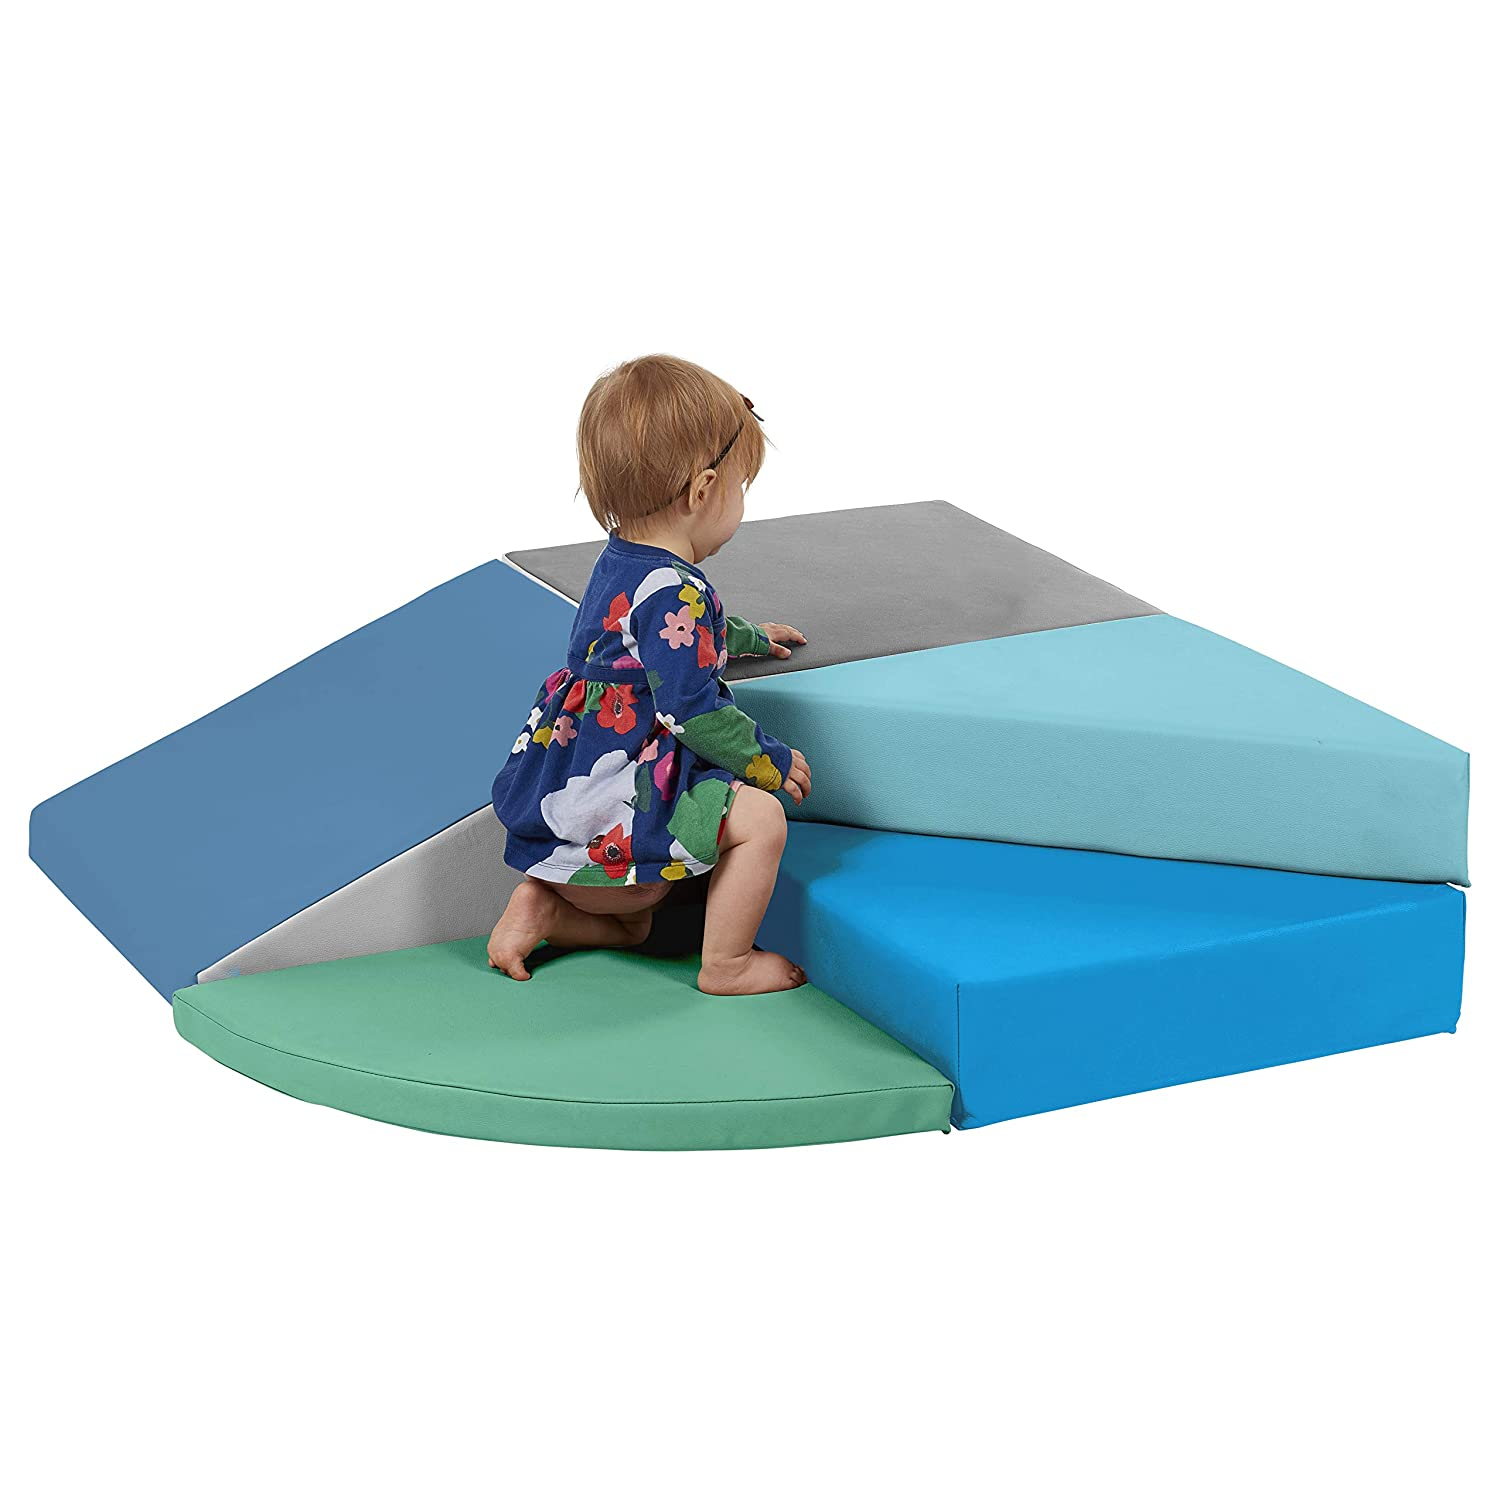 Soft Foam Play Set ECR4Kids SoftZone Tiny Twisting Foam Corner Climber Indoor Active Play Structure for Toddlers and Kids Primary ELR-12669